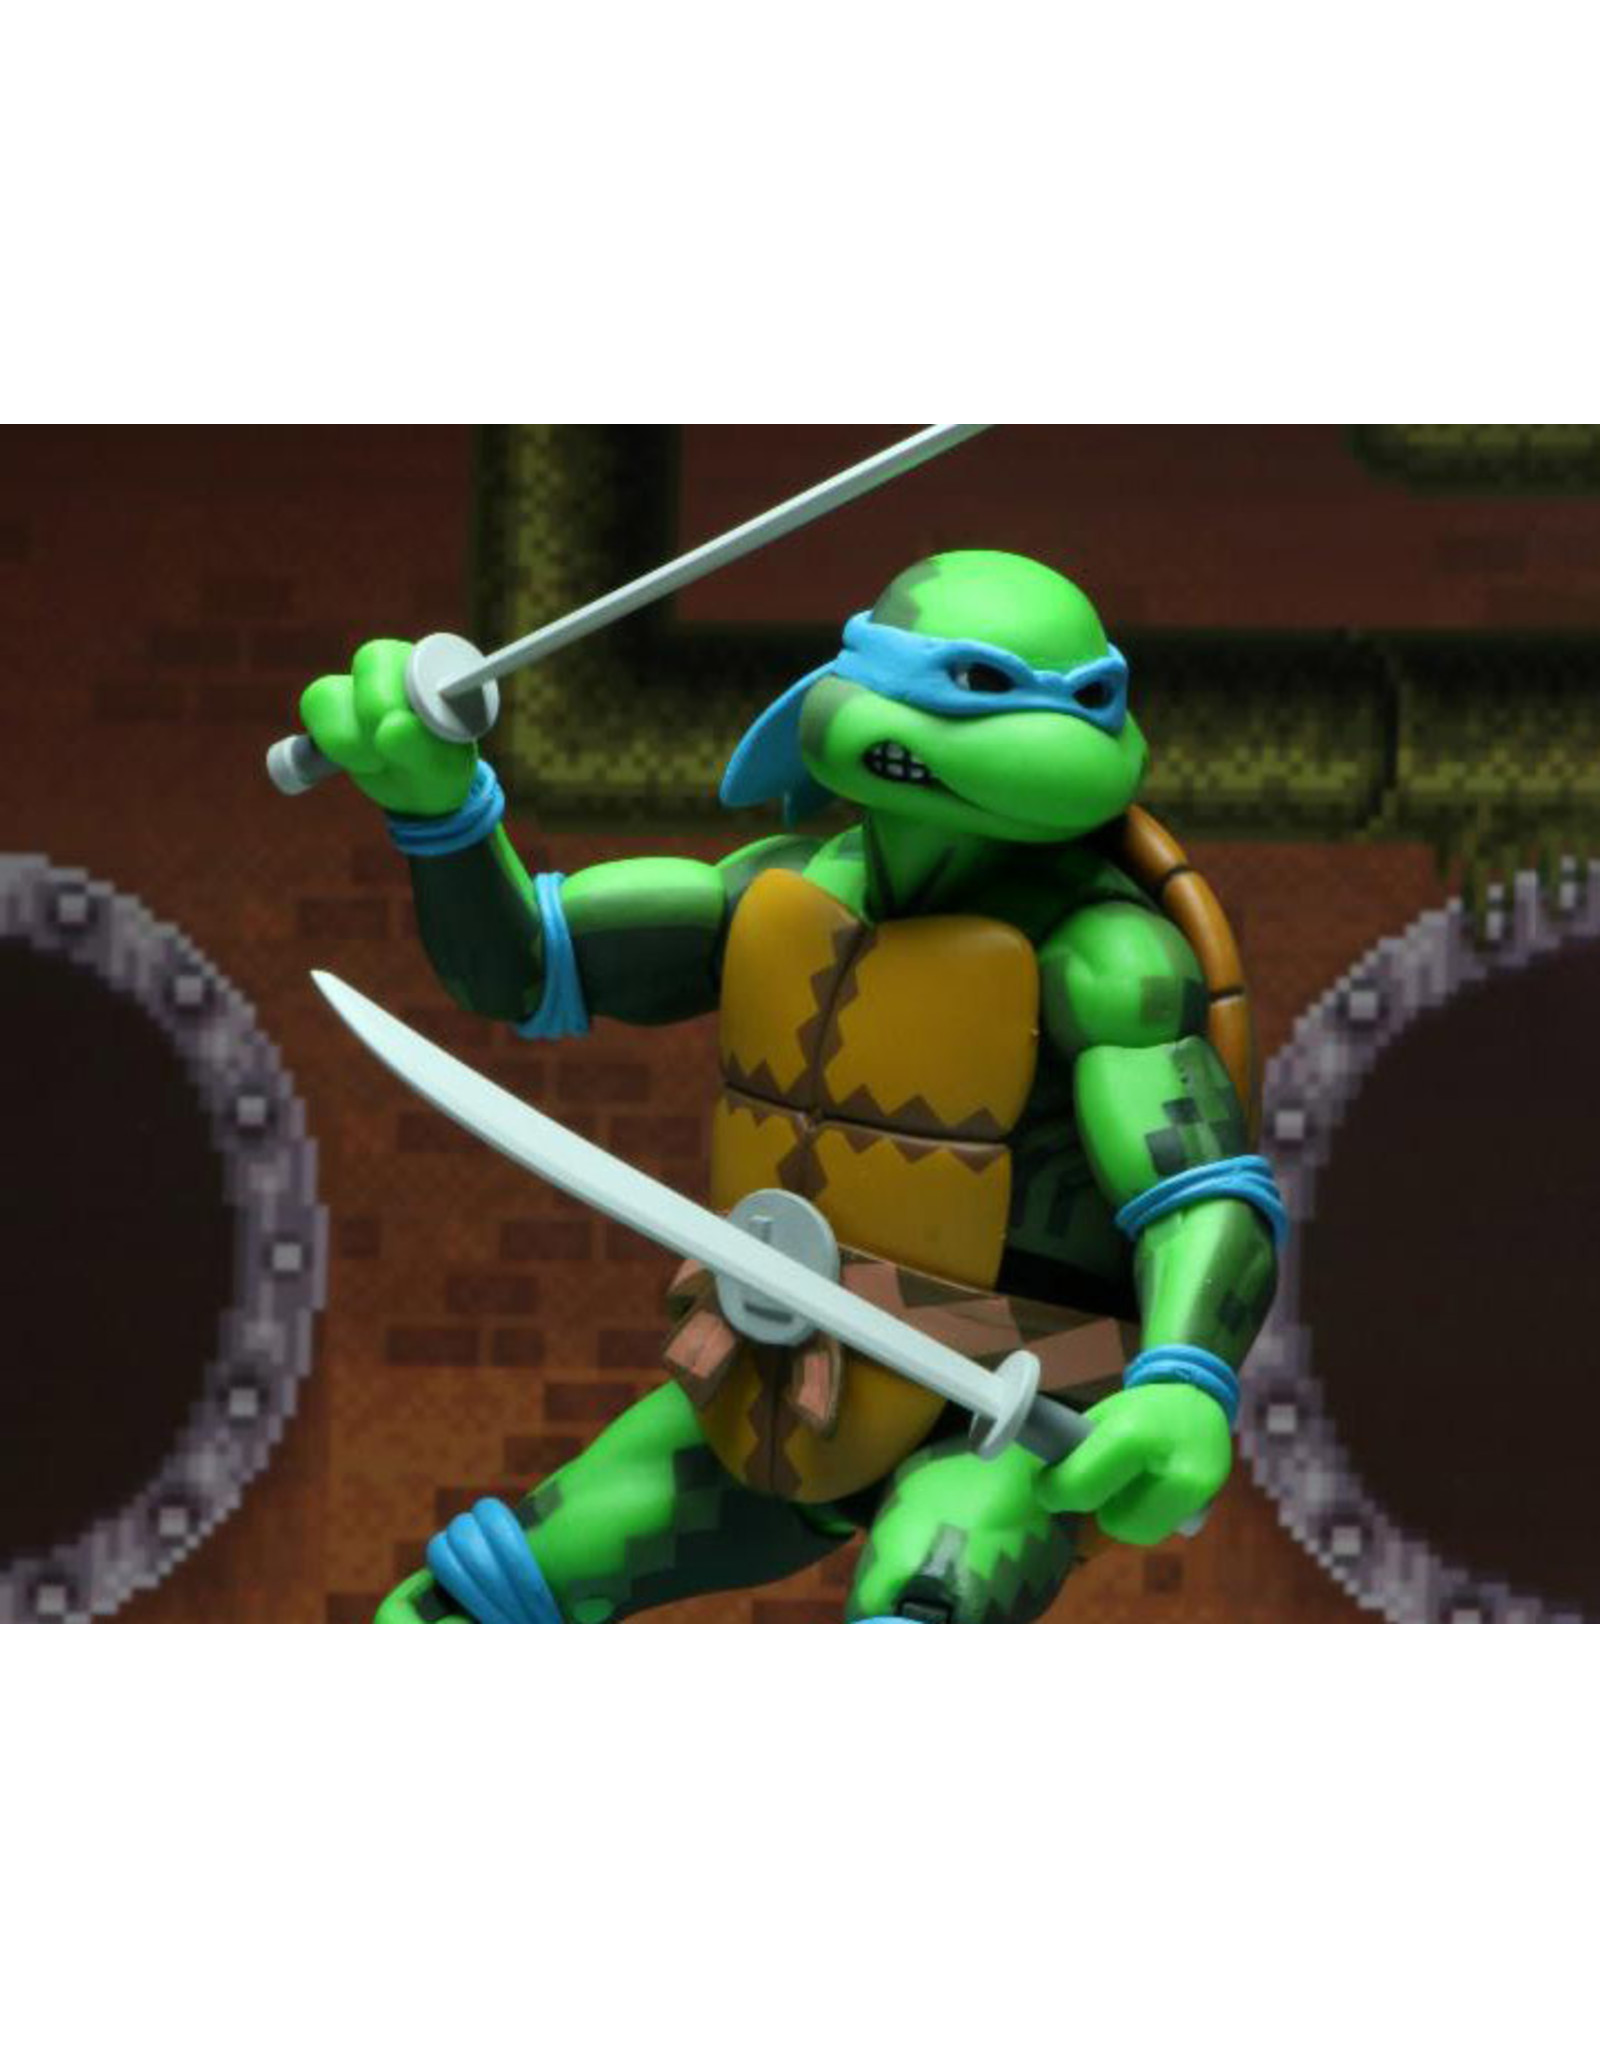 NECA TMNT: Turtles in Time Leonardo